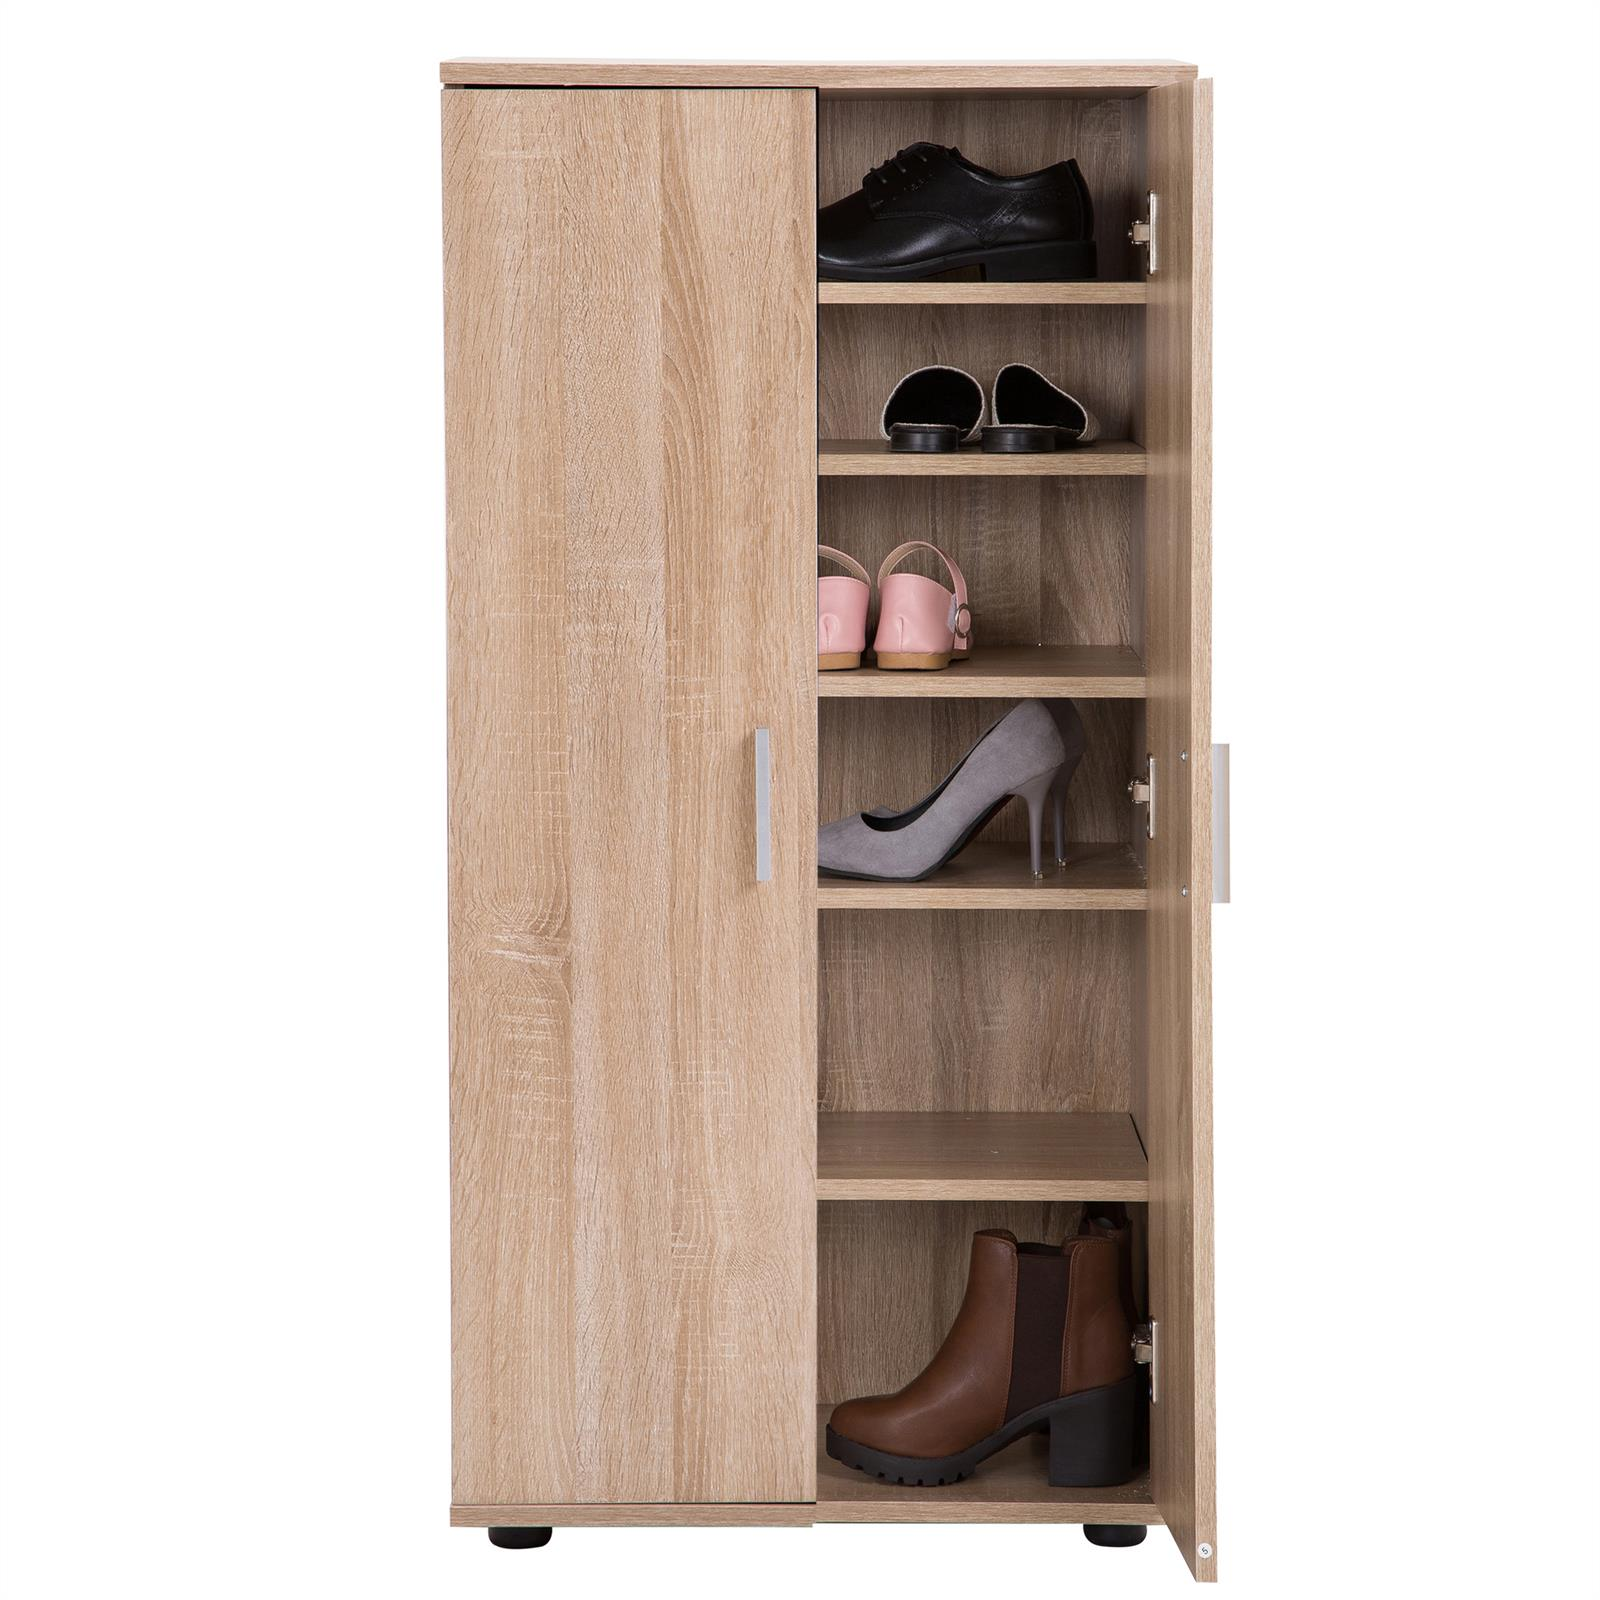 schuhschrank schuhregal kommode aufbewahrung diele flur. Black Bedroom Furniture Sets. Home Design Ideas